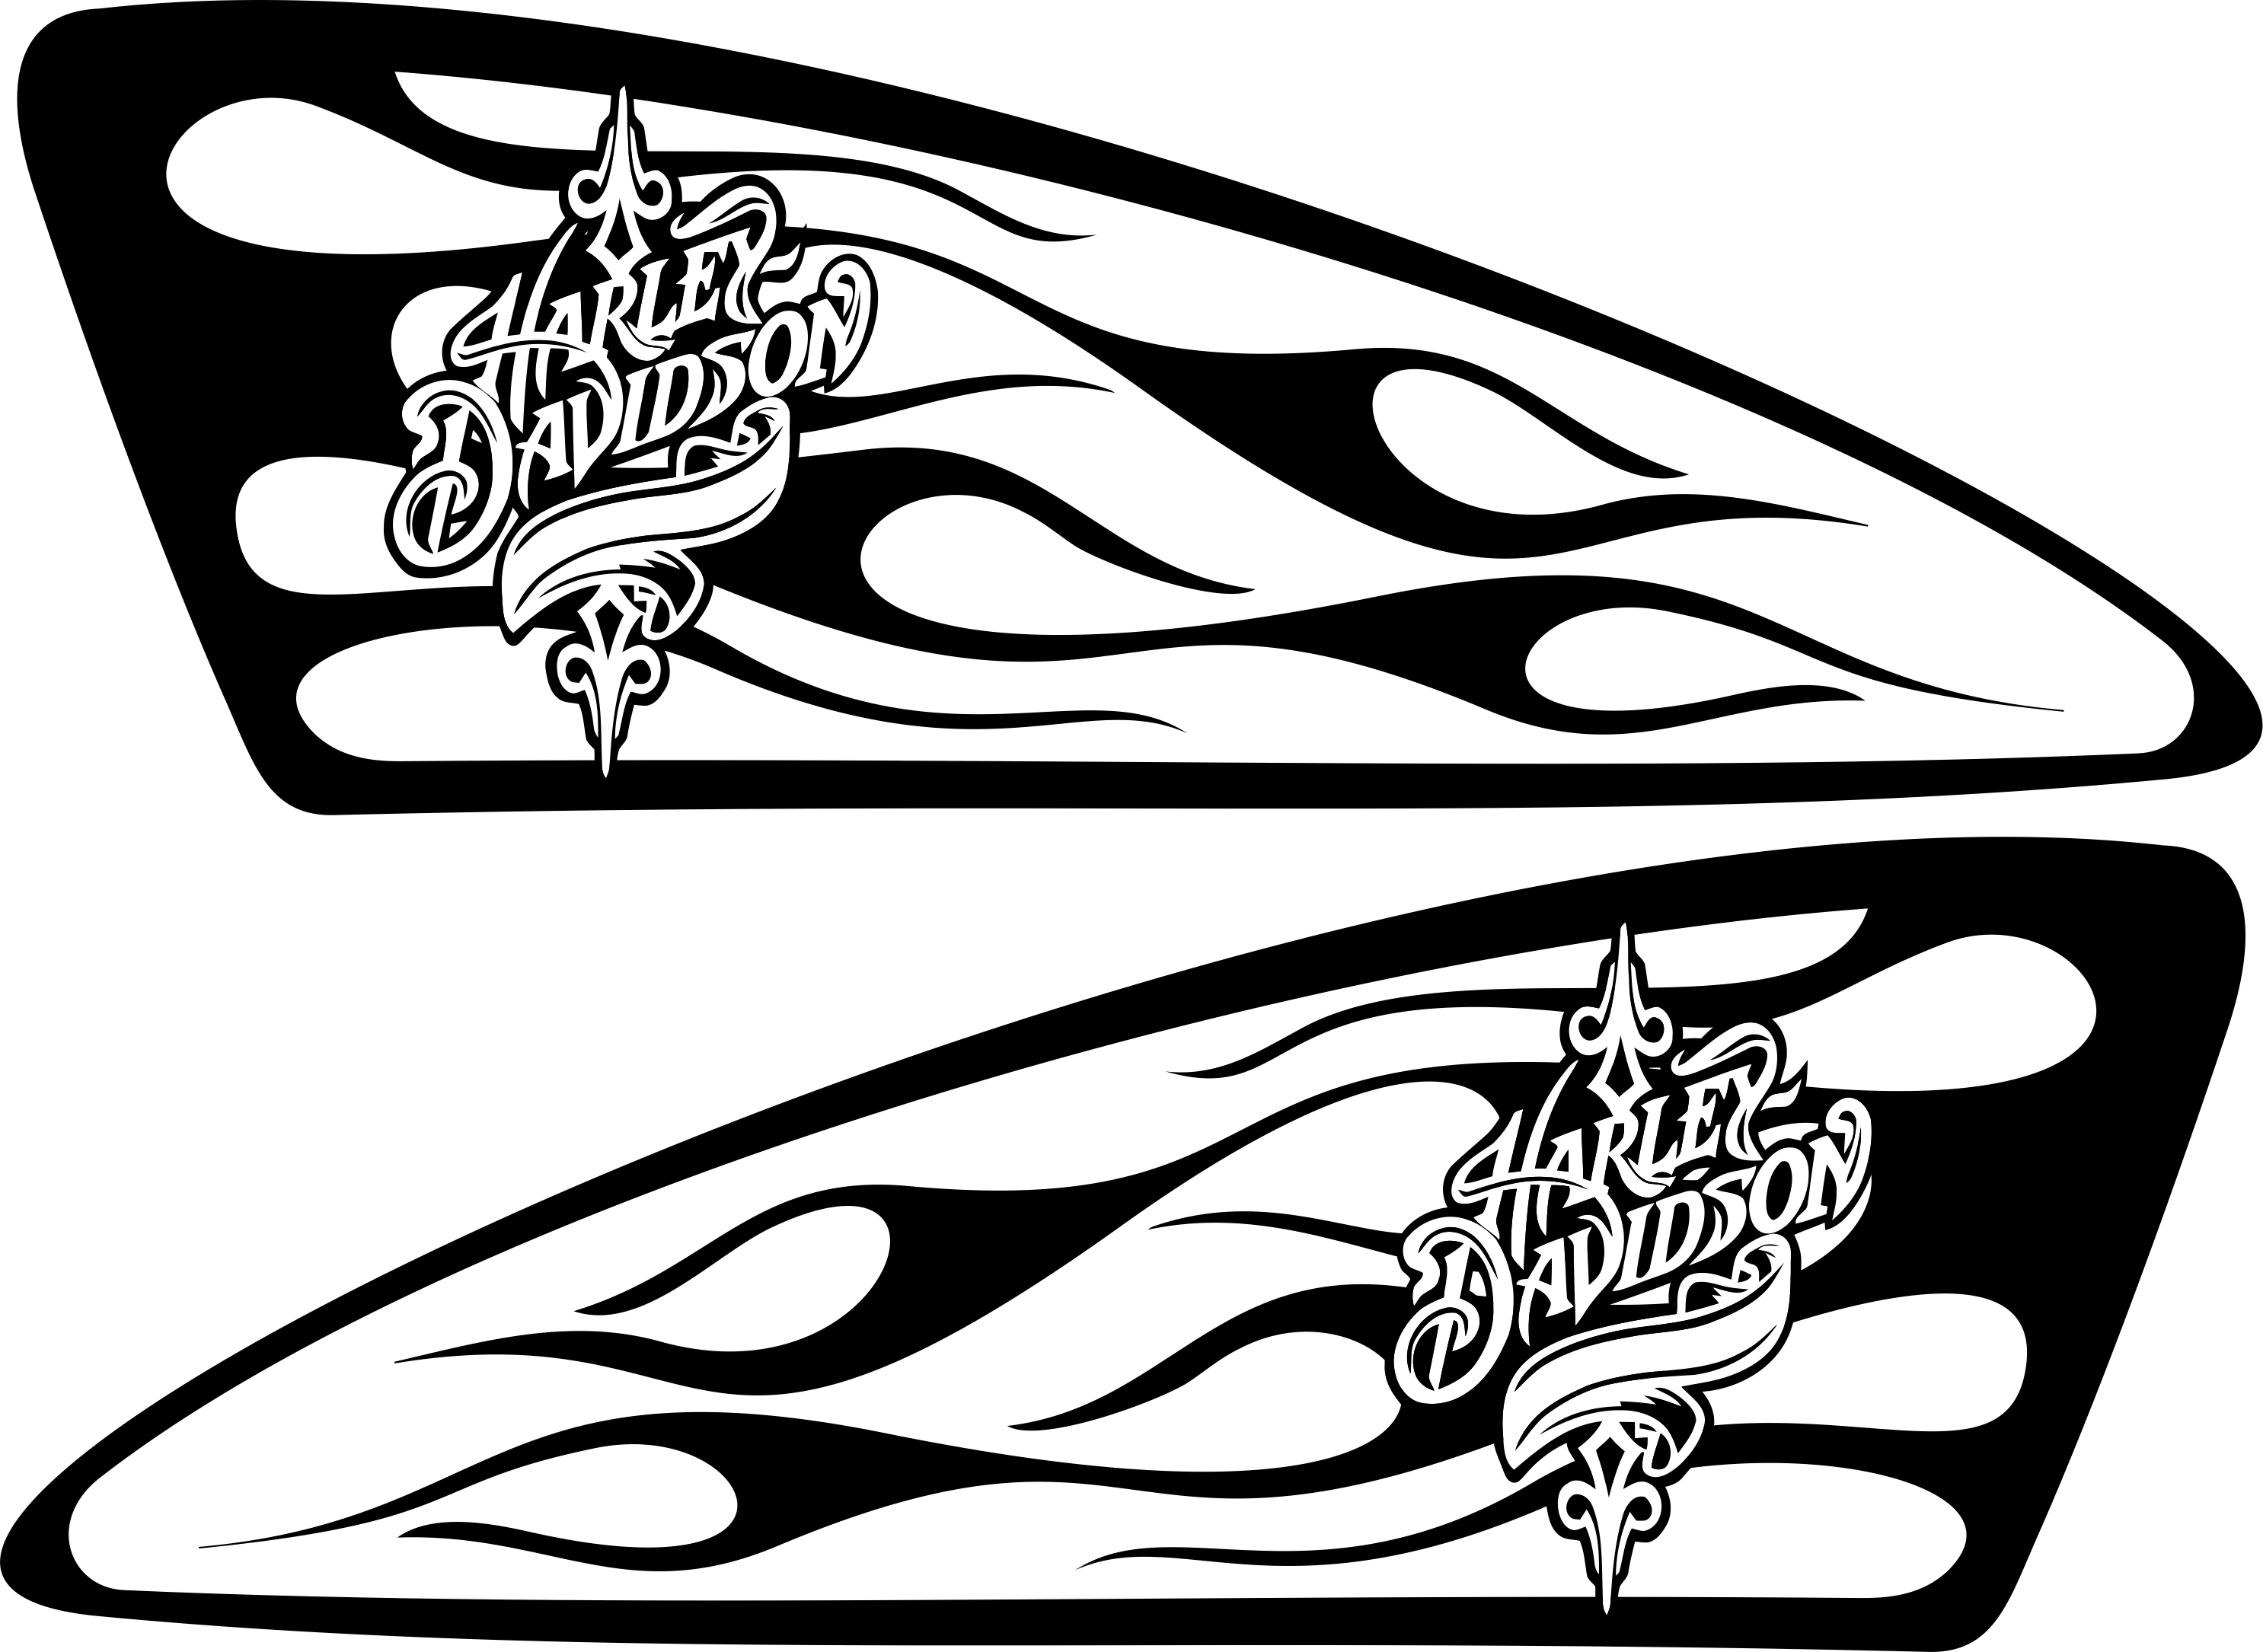 Harley Decals Airbrush Gas Tank Stencils Vinyl Biker Art Harley Davidson Art Motorcycle Paint Jobs